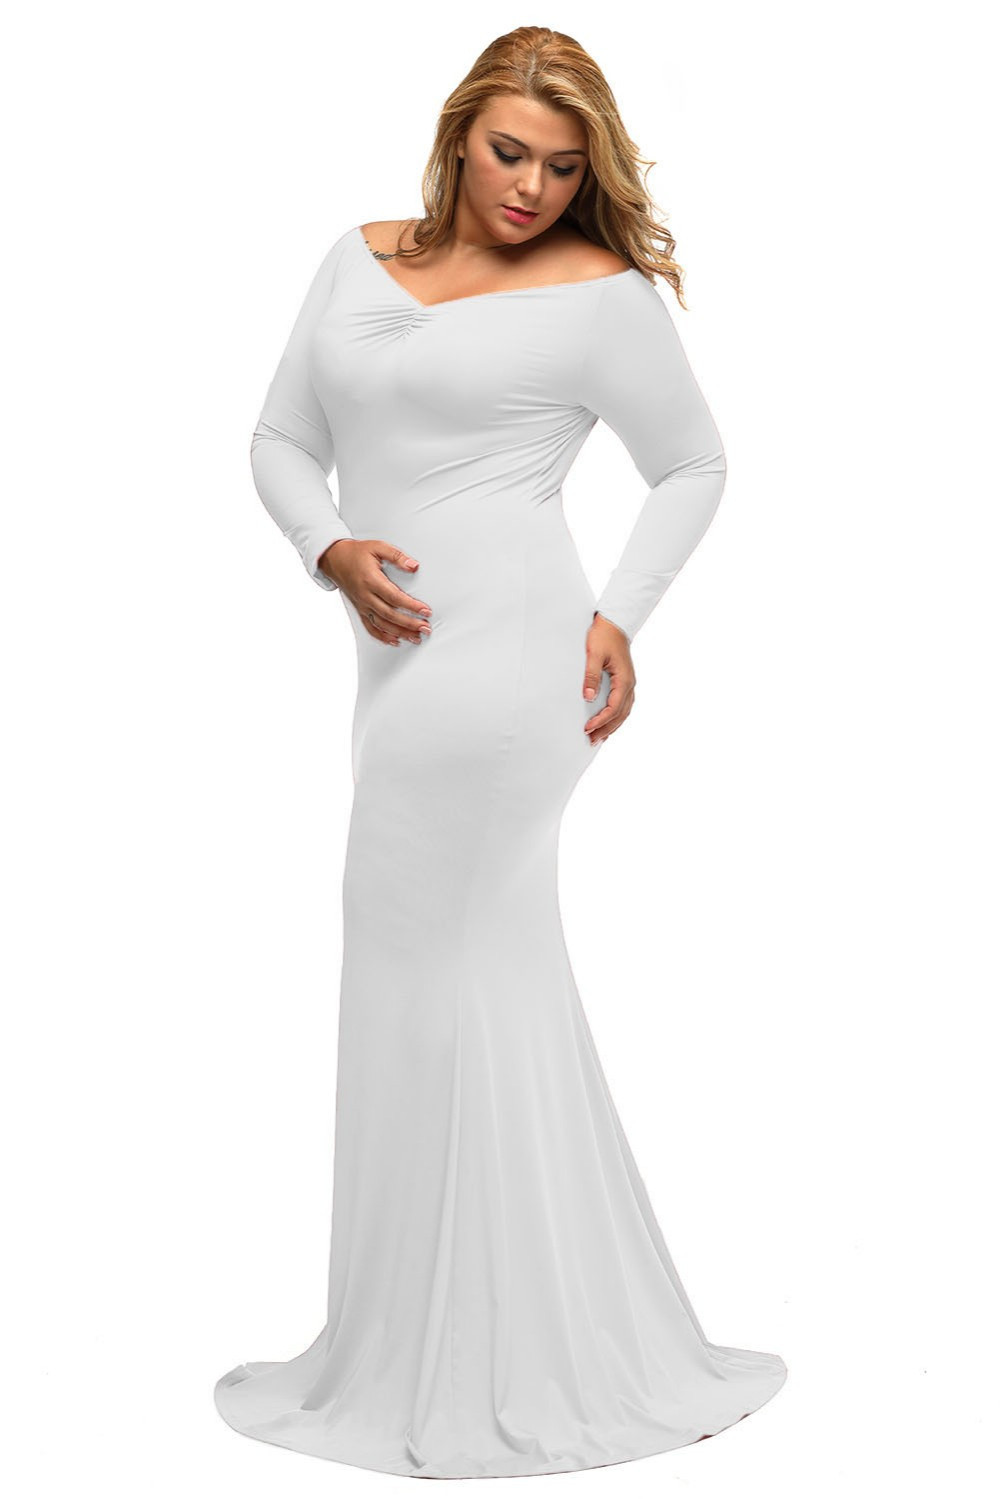 Plus Sized Maxi dresses with V neck at Bling Brides Bouquet - Online Bridal